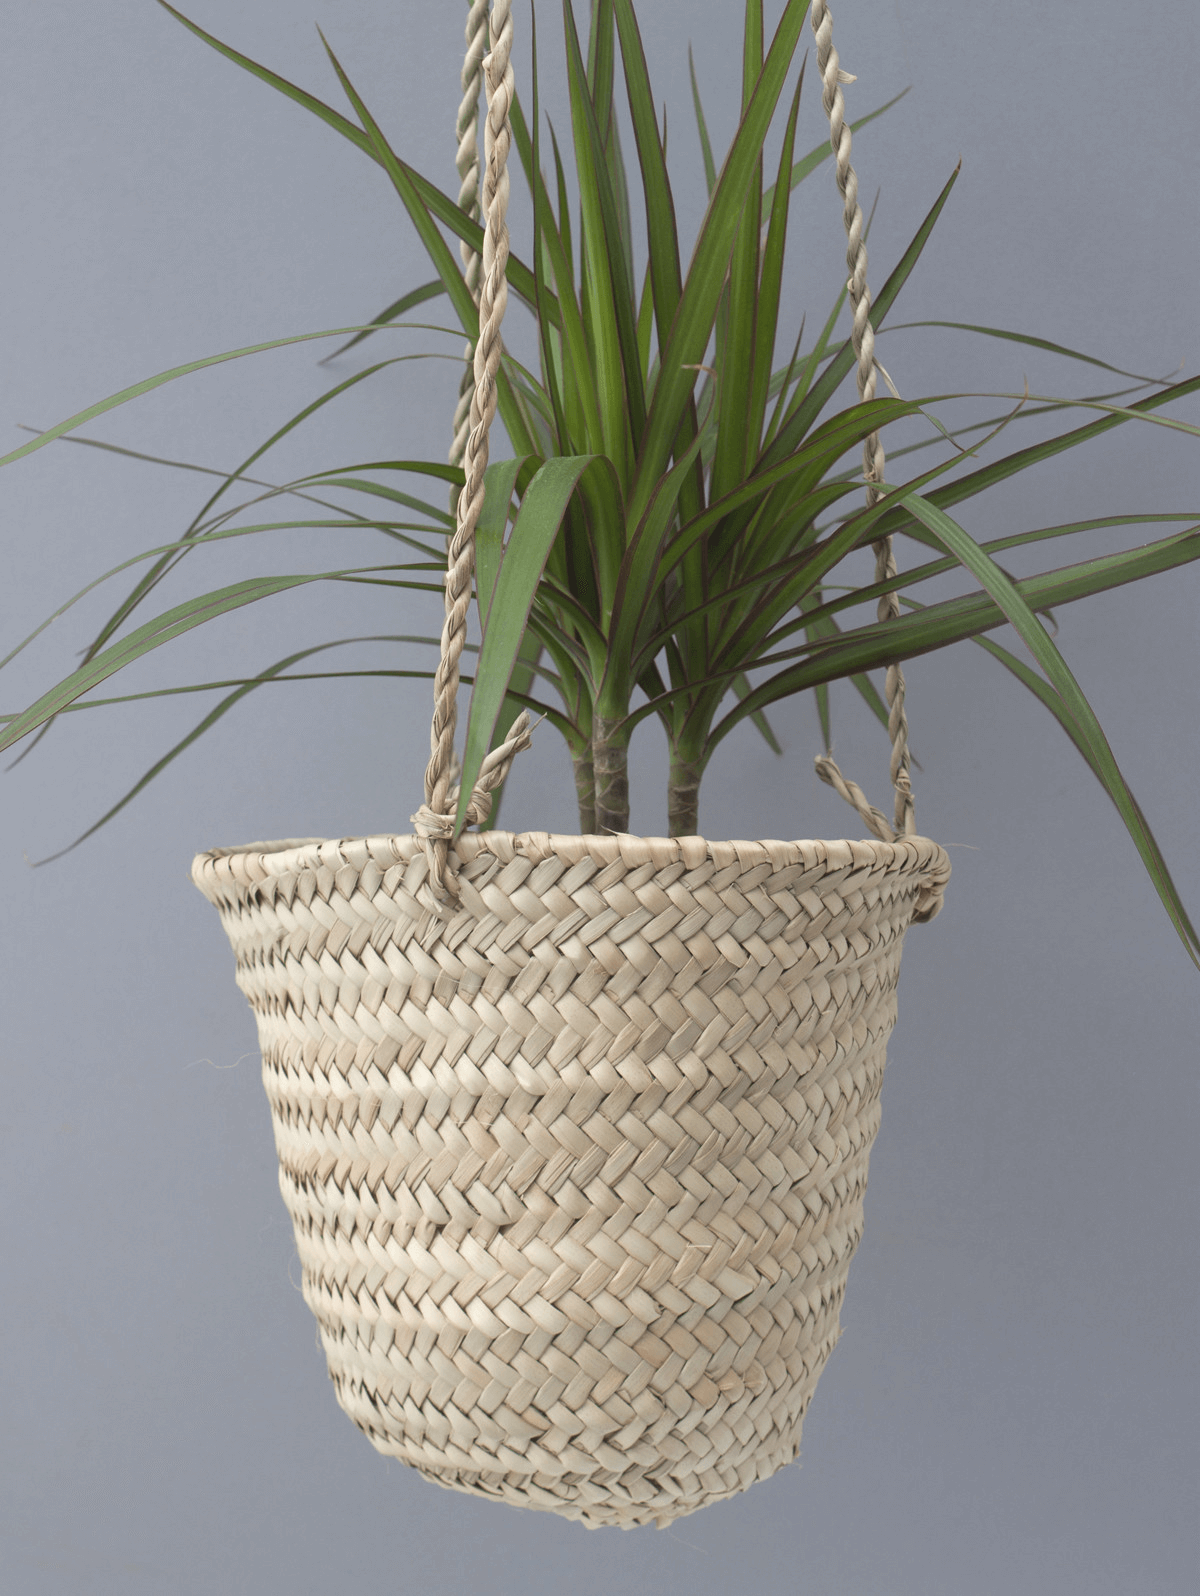 Bohemia basket hanger small pot for indoor or porch